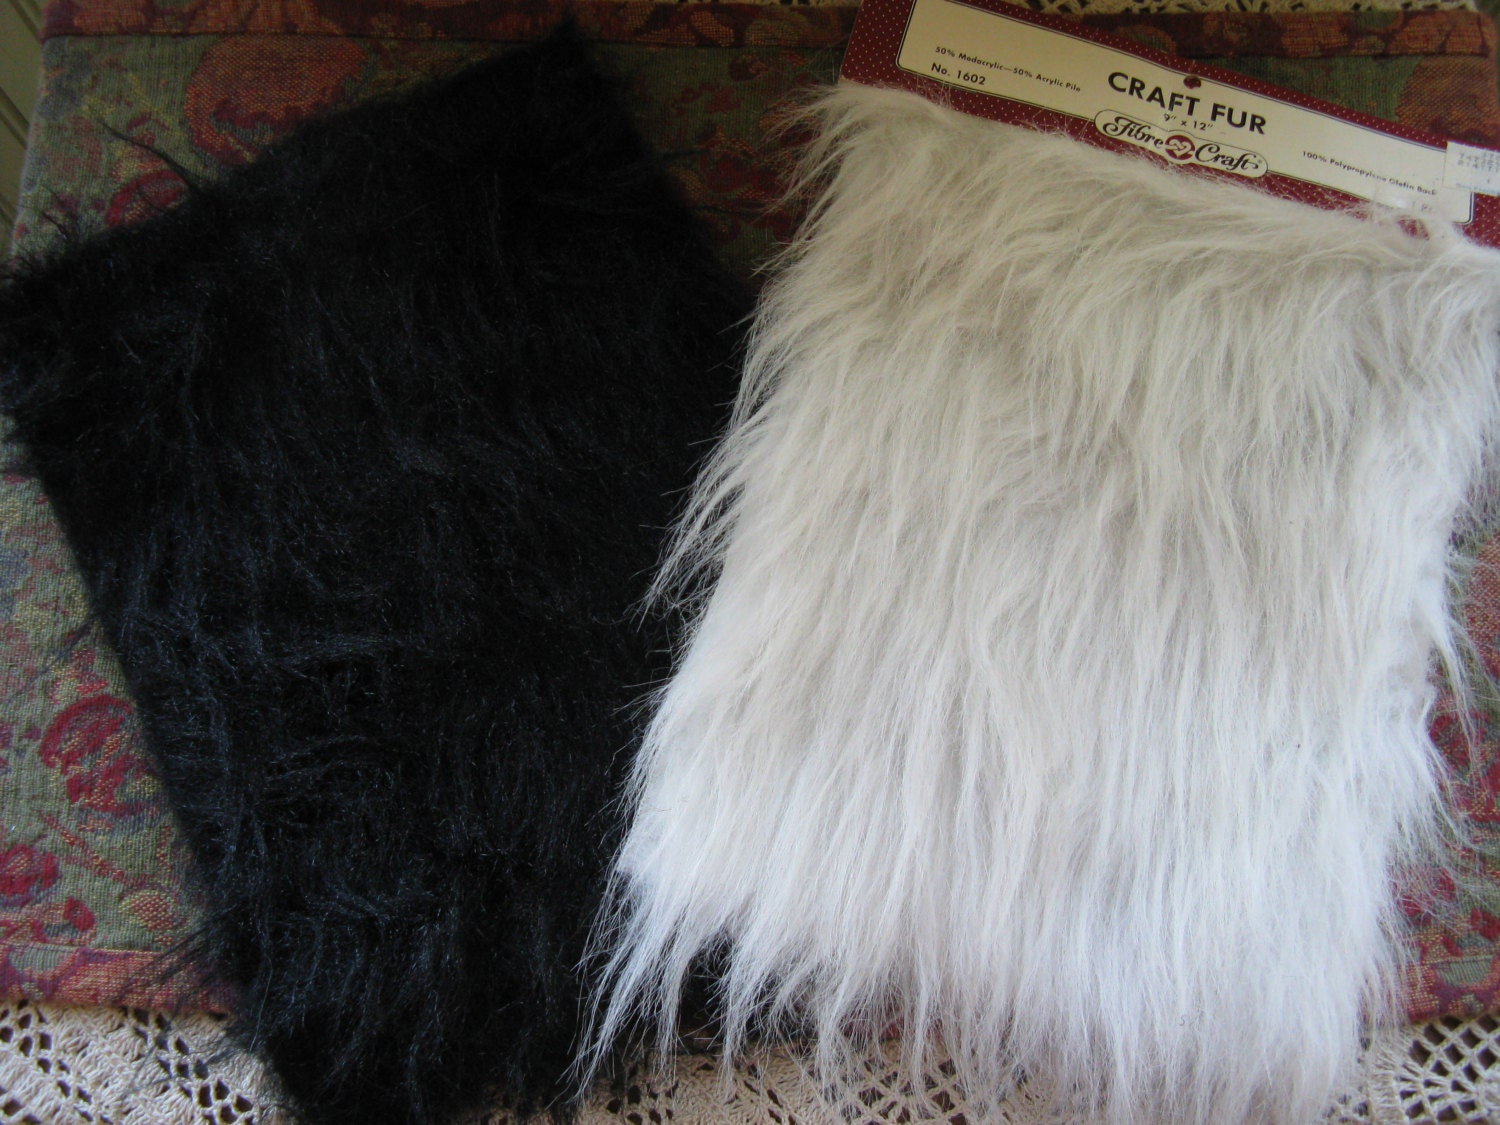 Craft fur faux long hair 2 pieces black and white with gray for Furry craft